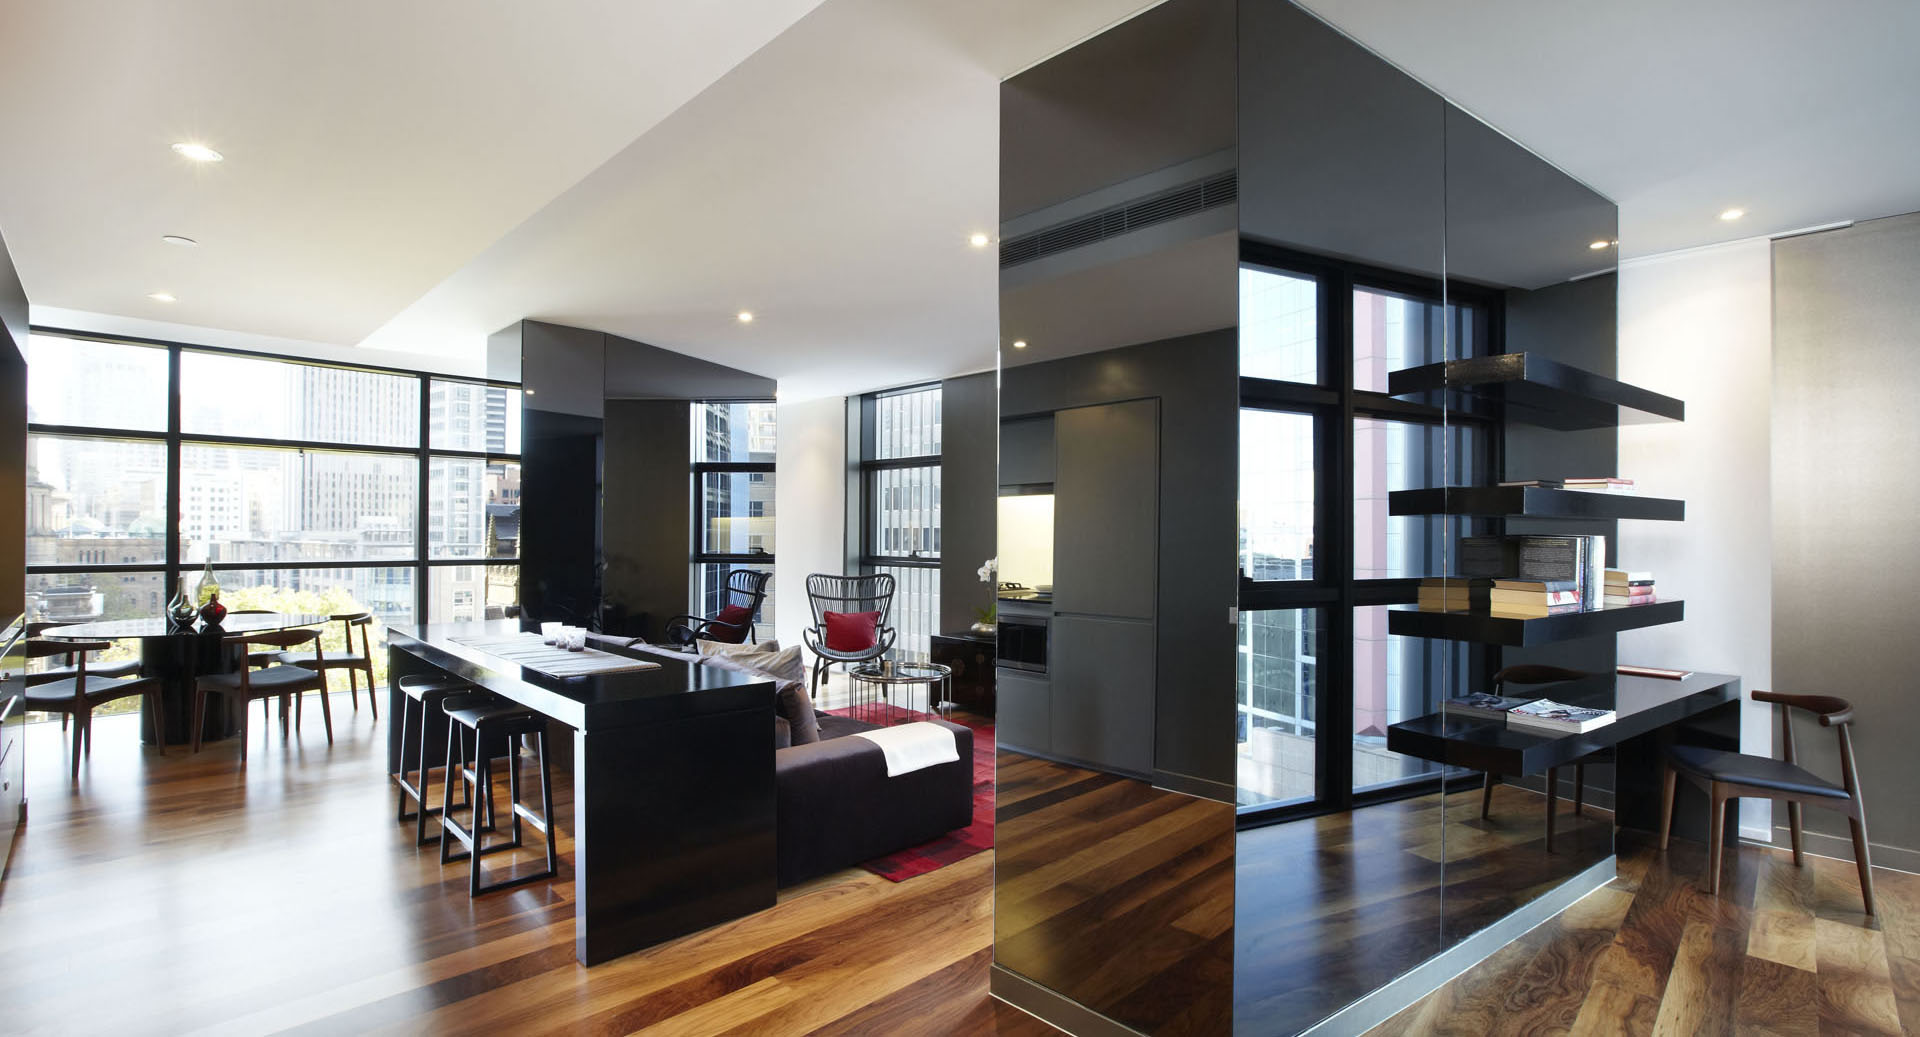 Contemporary apartment designs in sydney idesignarch for Studio interior ideas